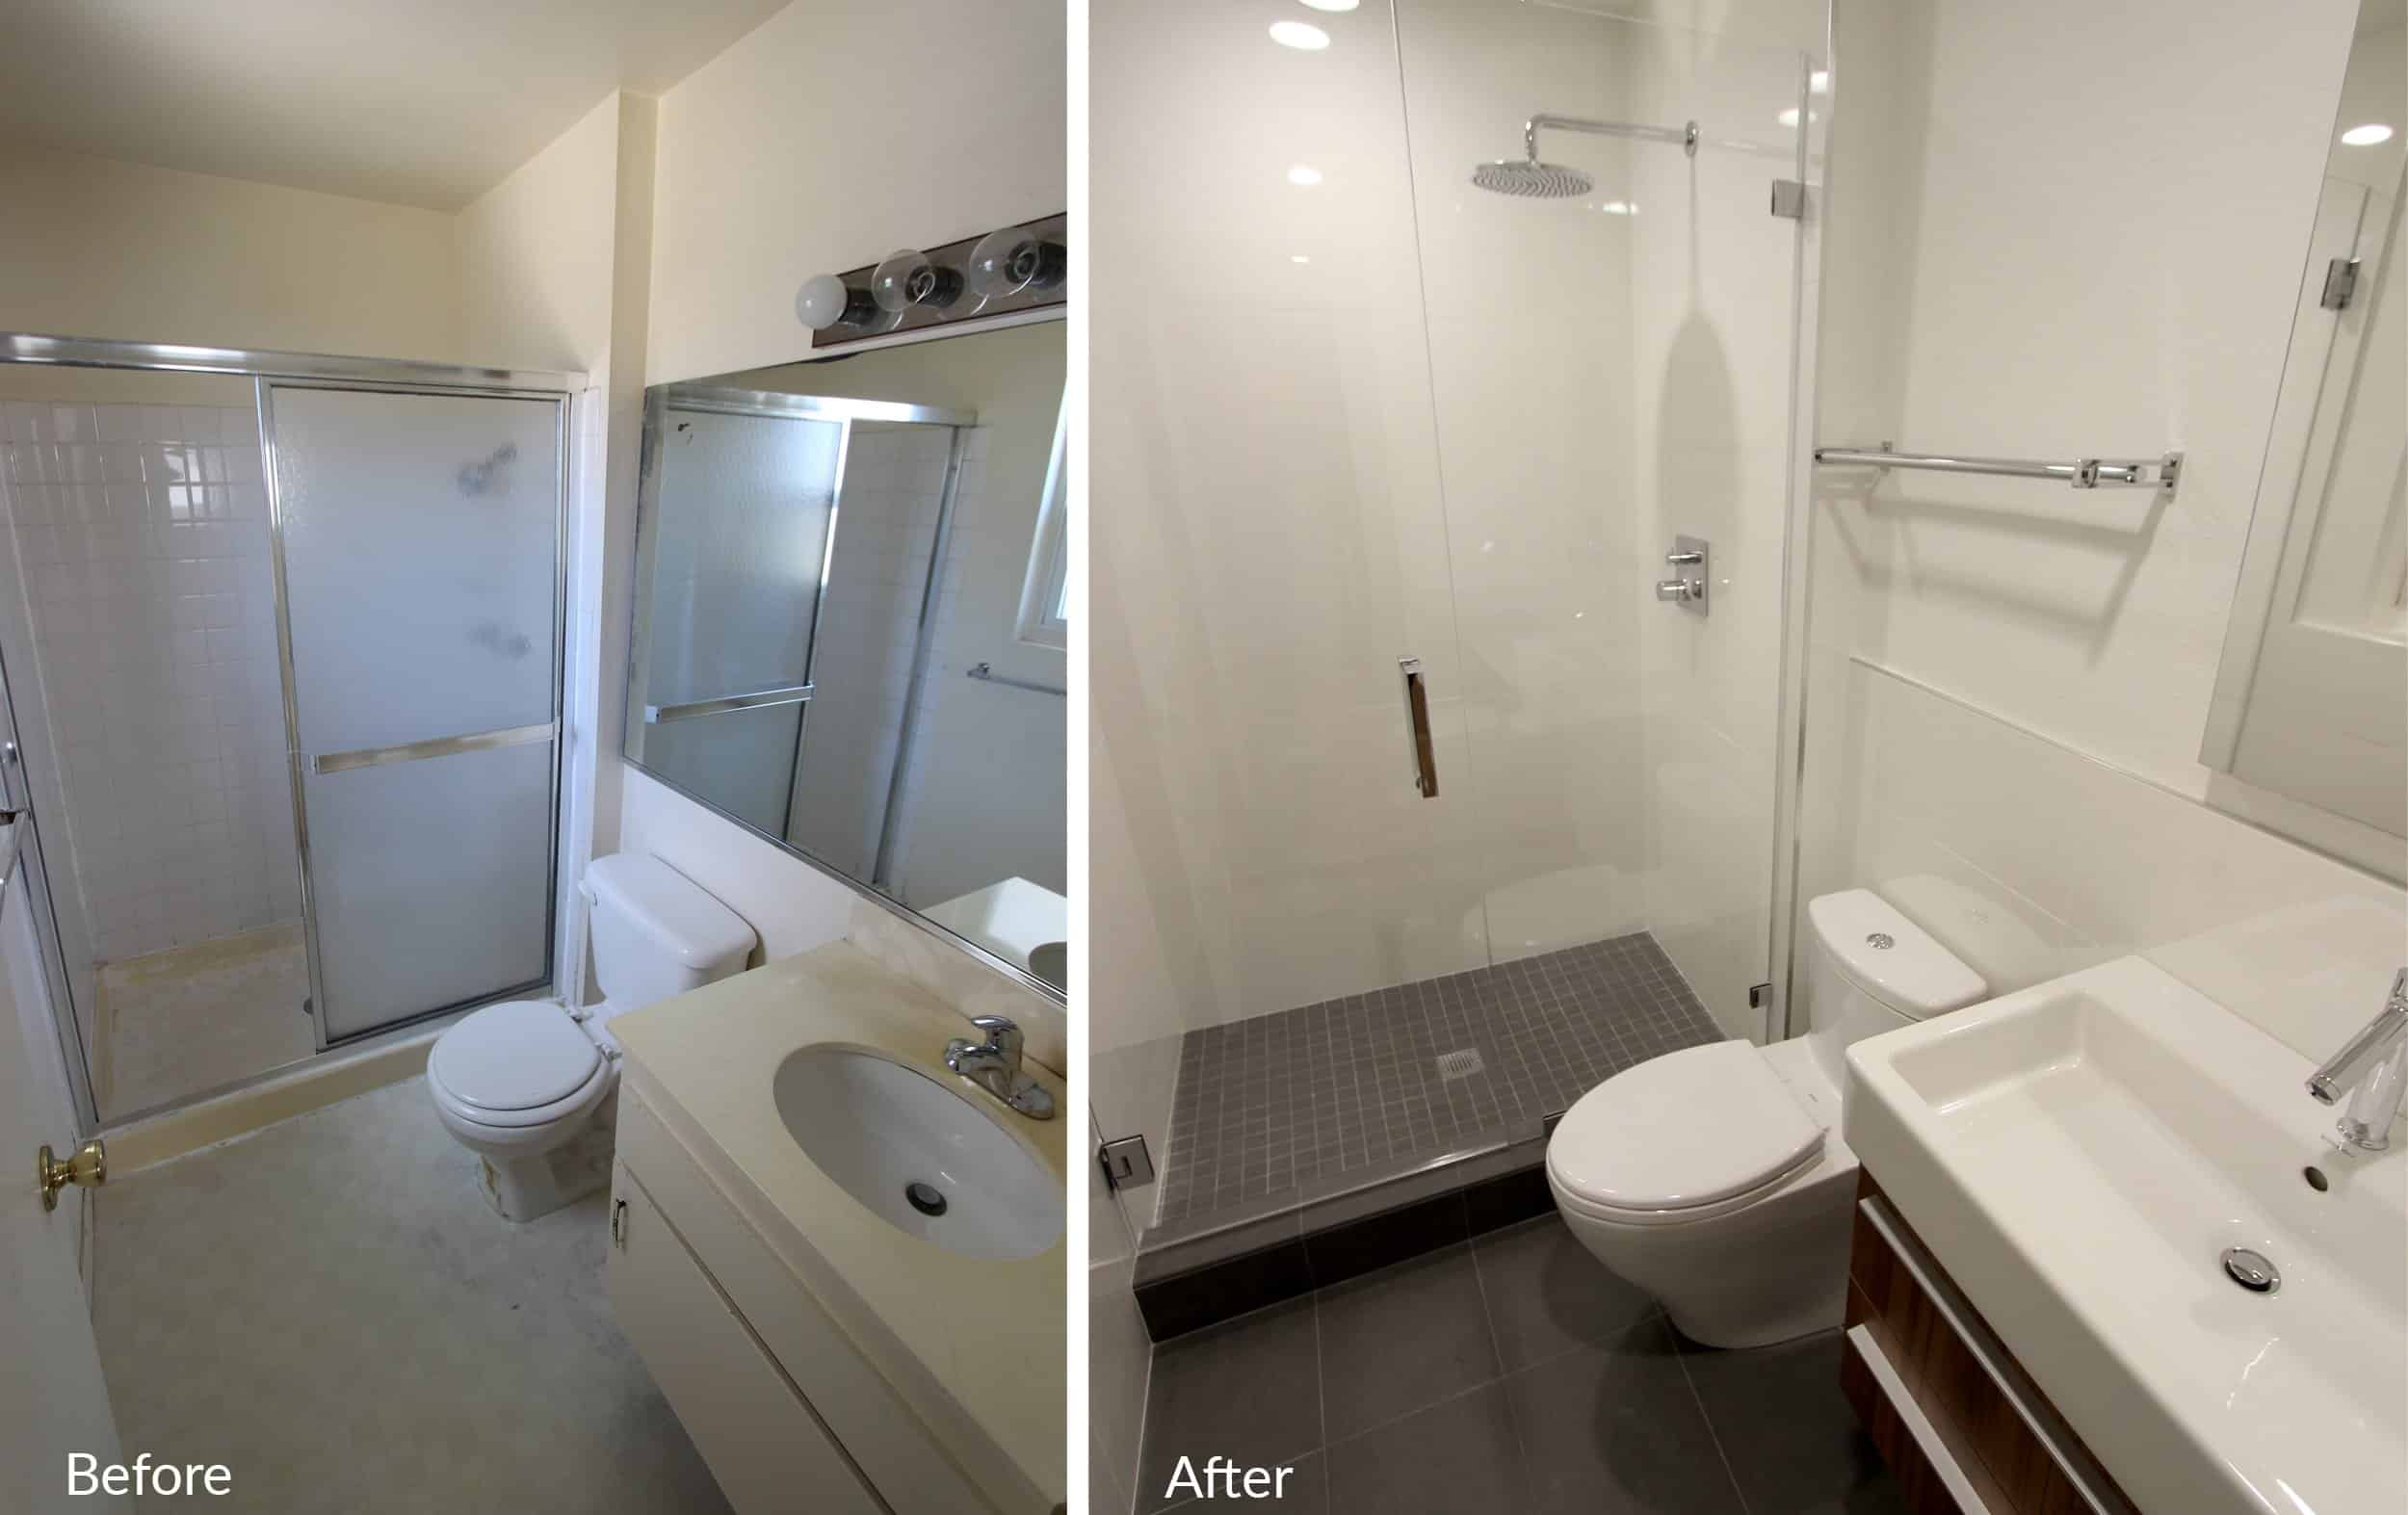 Bath Plumbing & Remodel Service from the pro's in Houston and Katy for faucets, showers, bath and moer